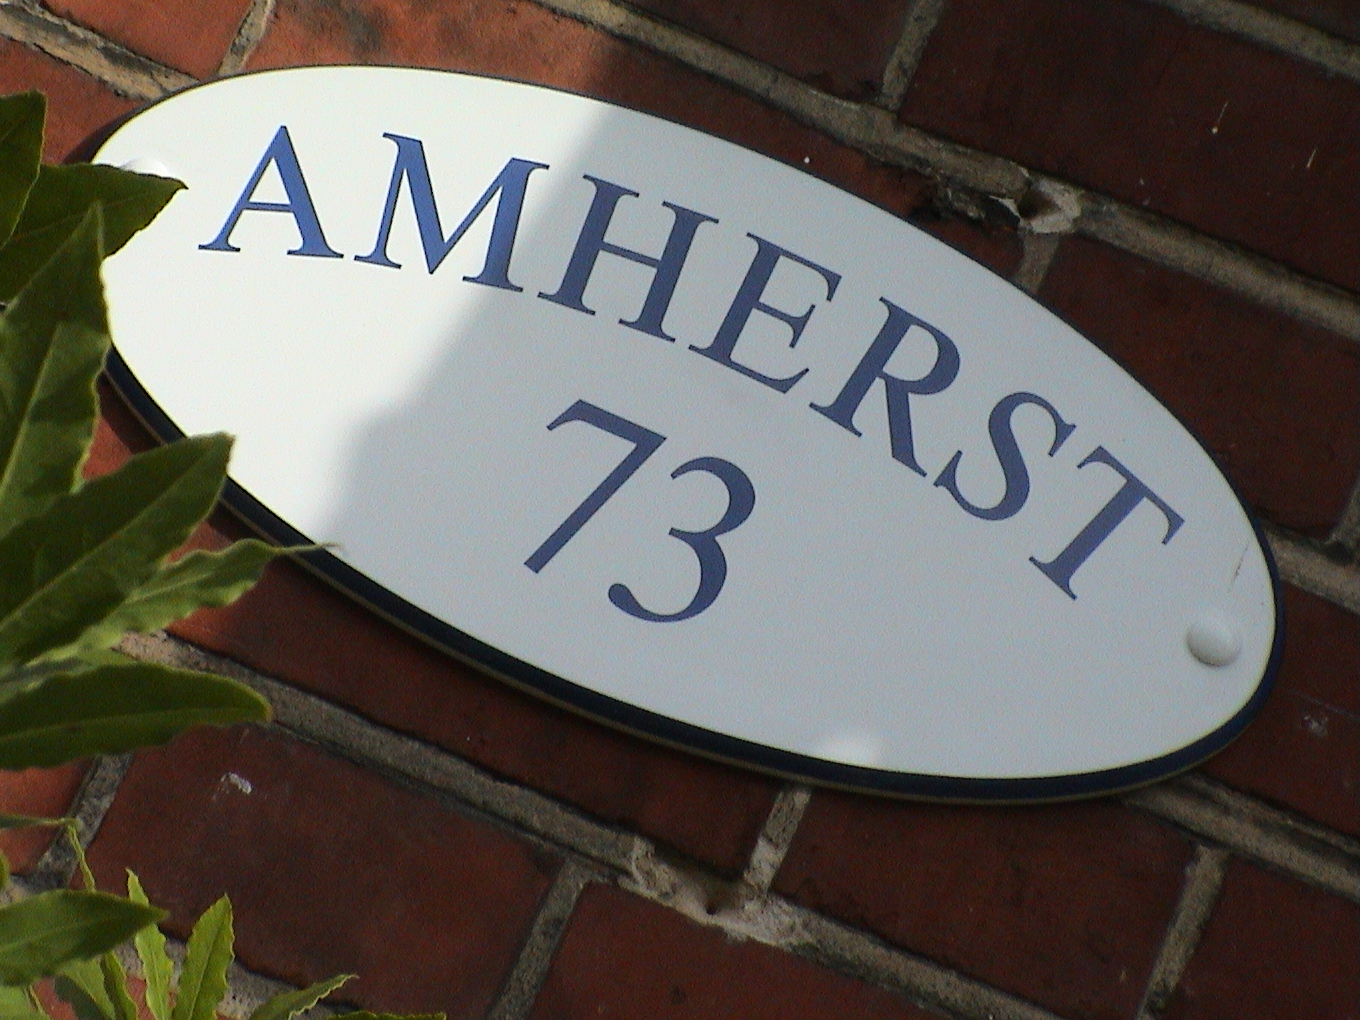 Amherst Guest House Pictures 017.jpg